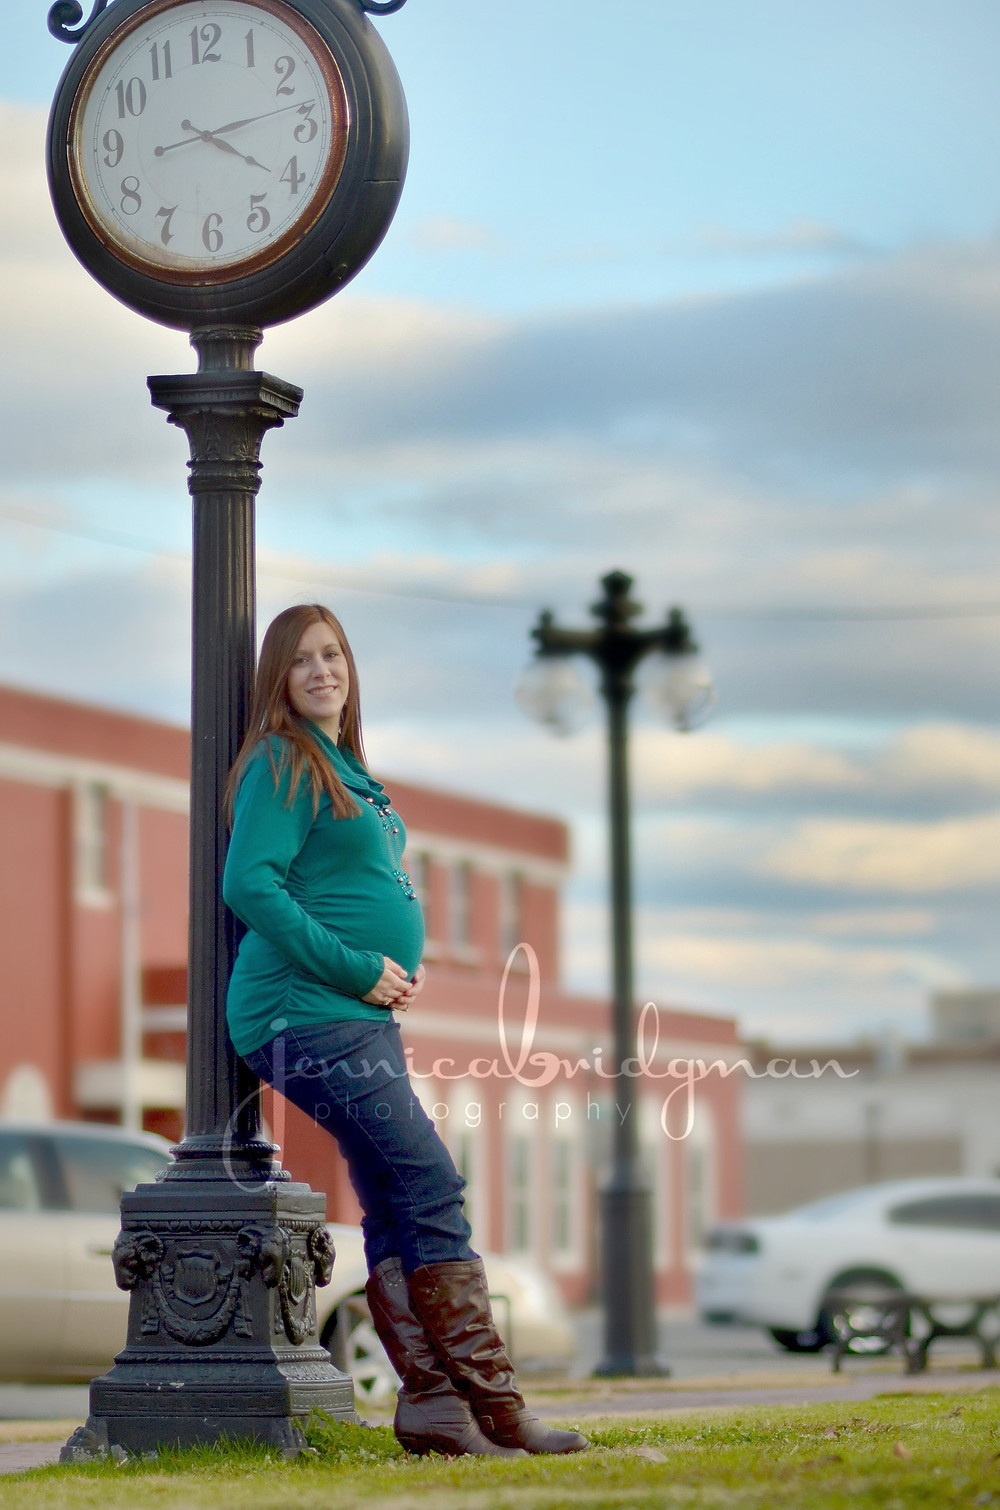 Downtown Conway Maternity Session    Conway, AR Maternity Photographer